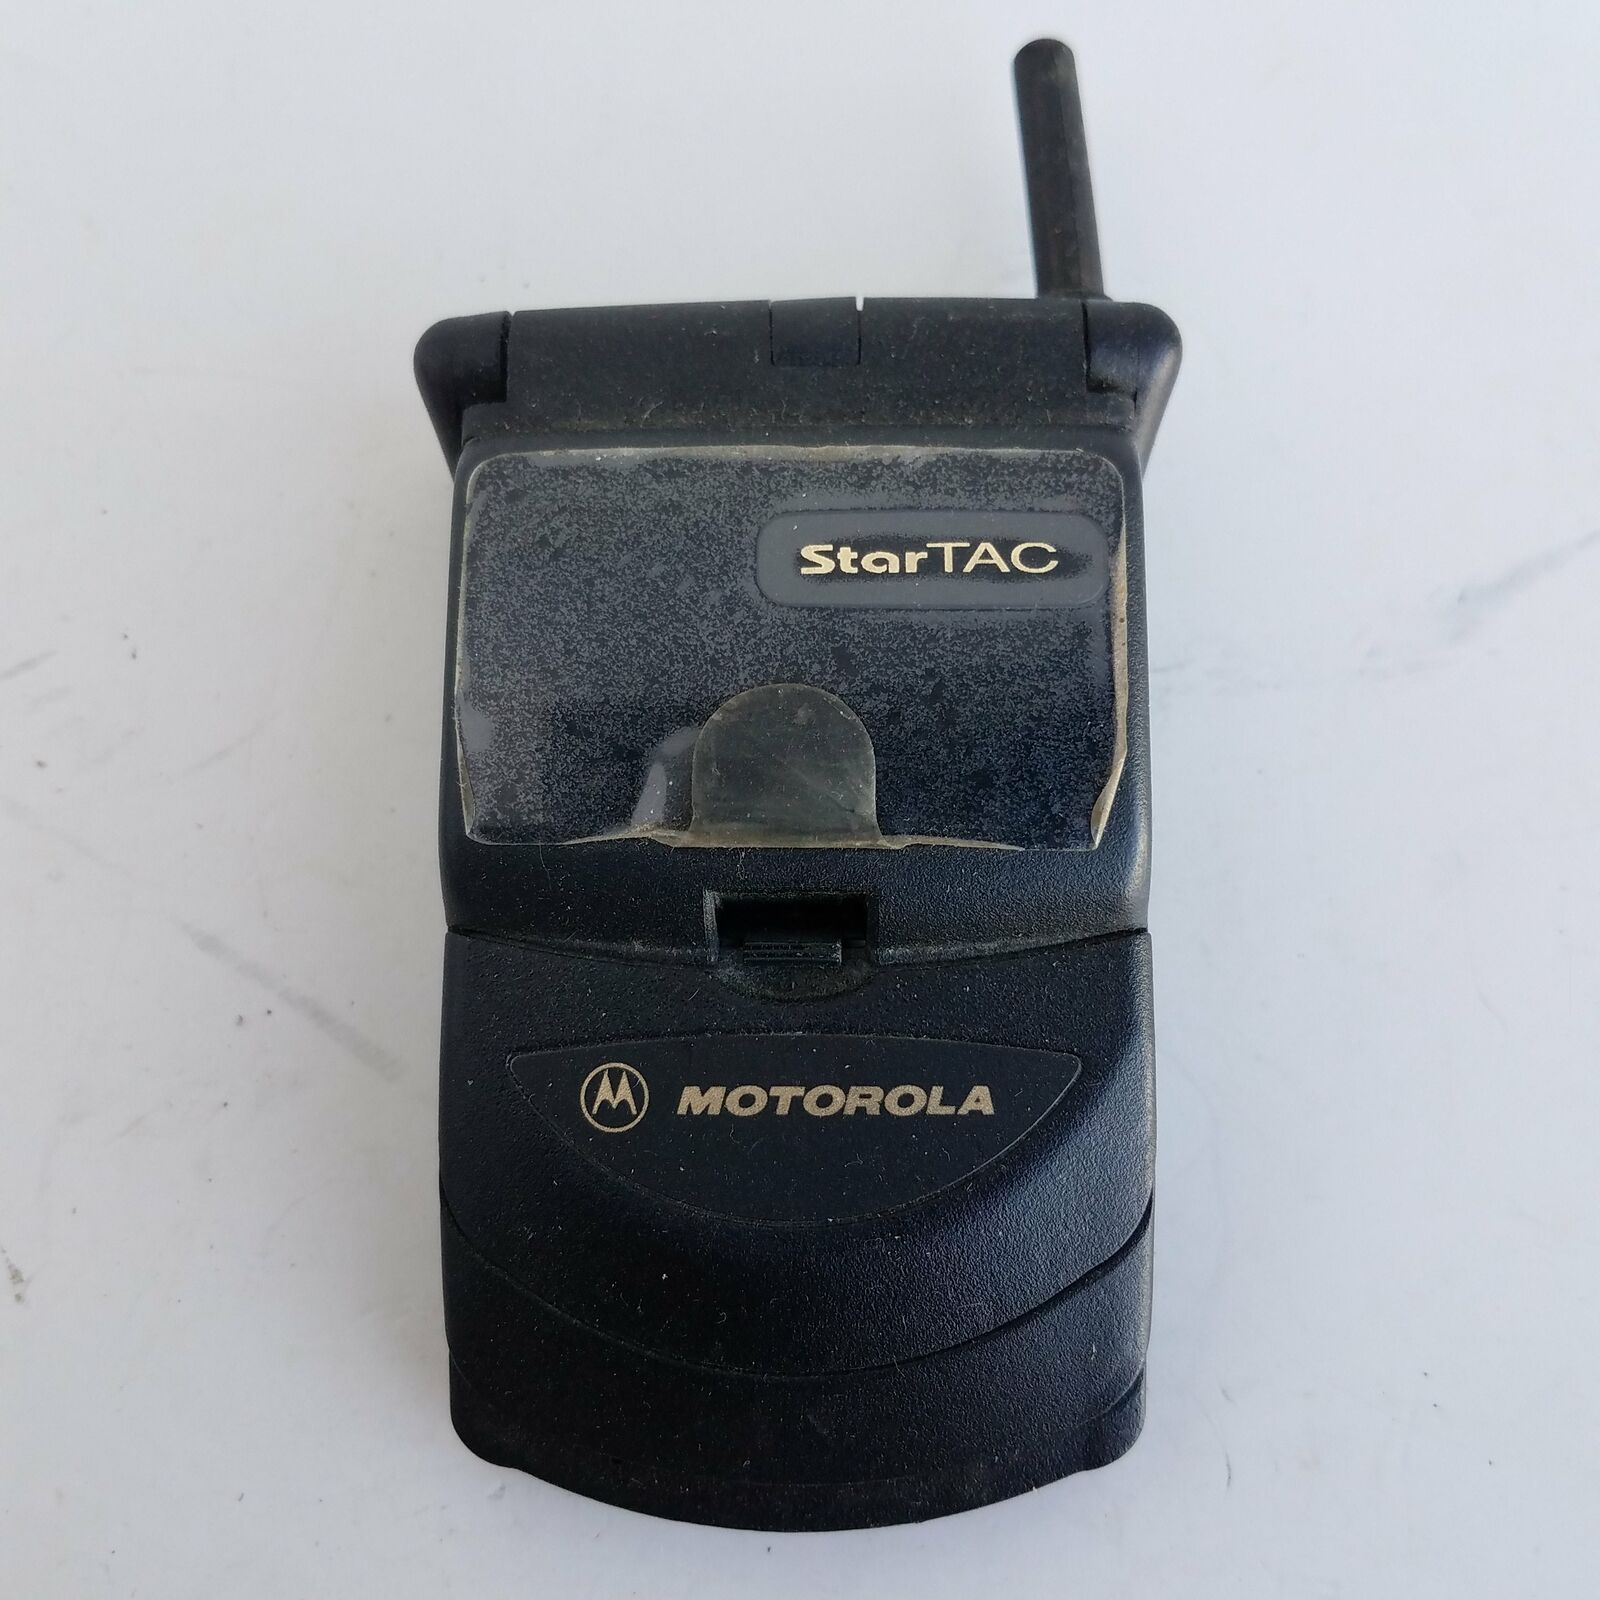 Primary image for Motorola StarTac Cell Phone Digital i ST7790i